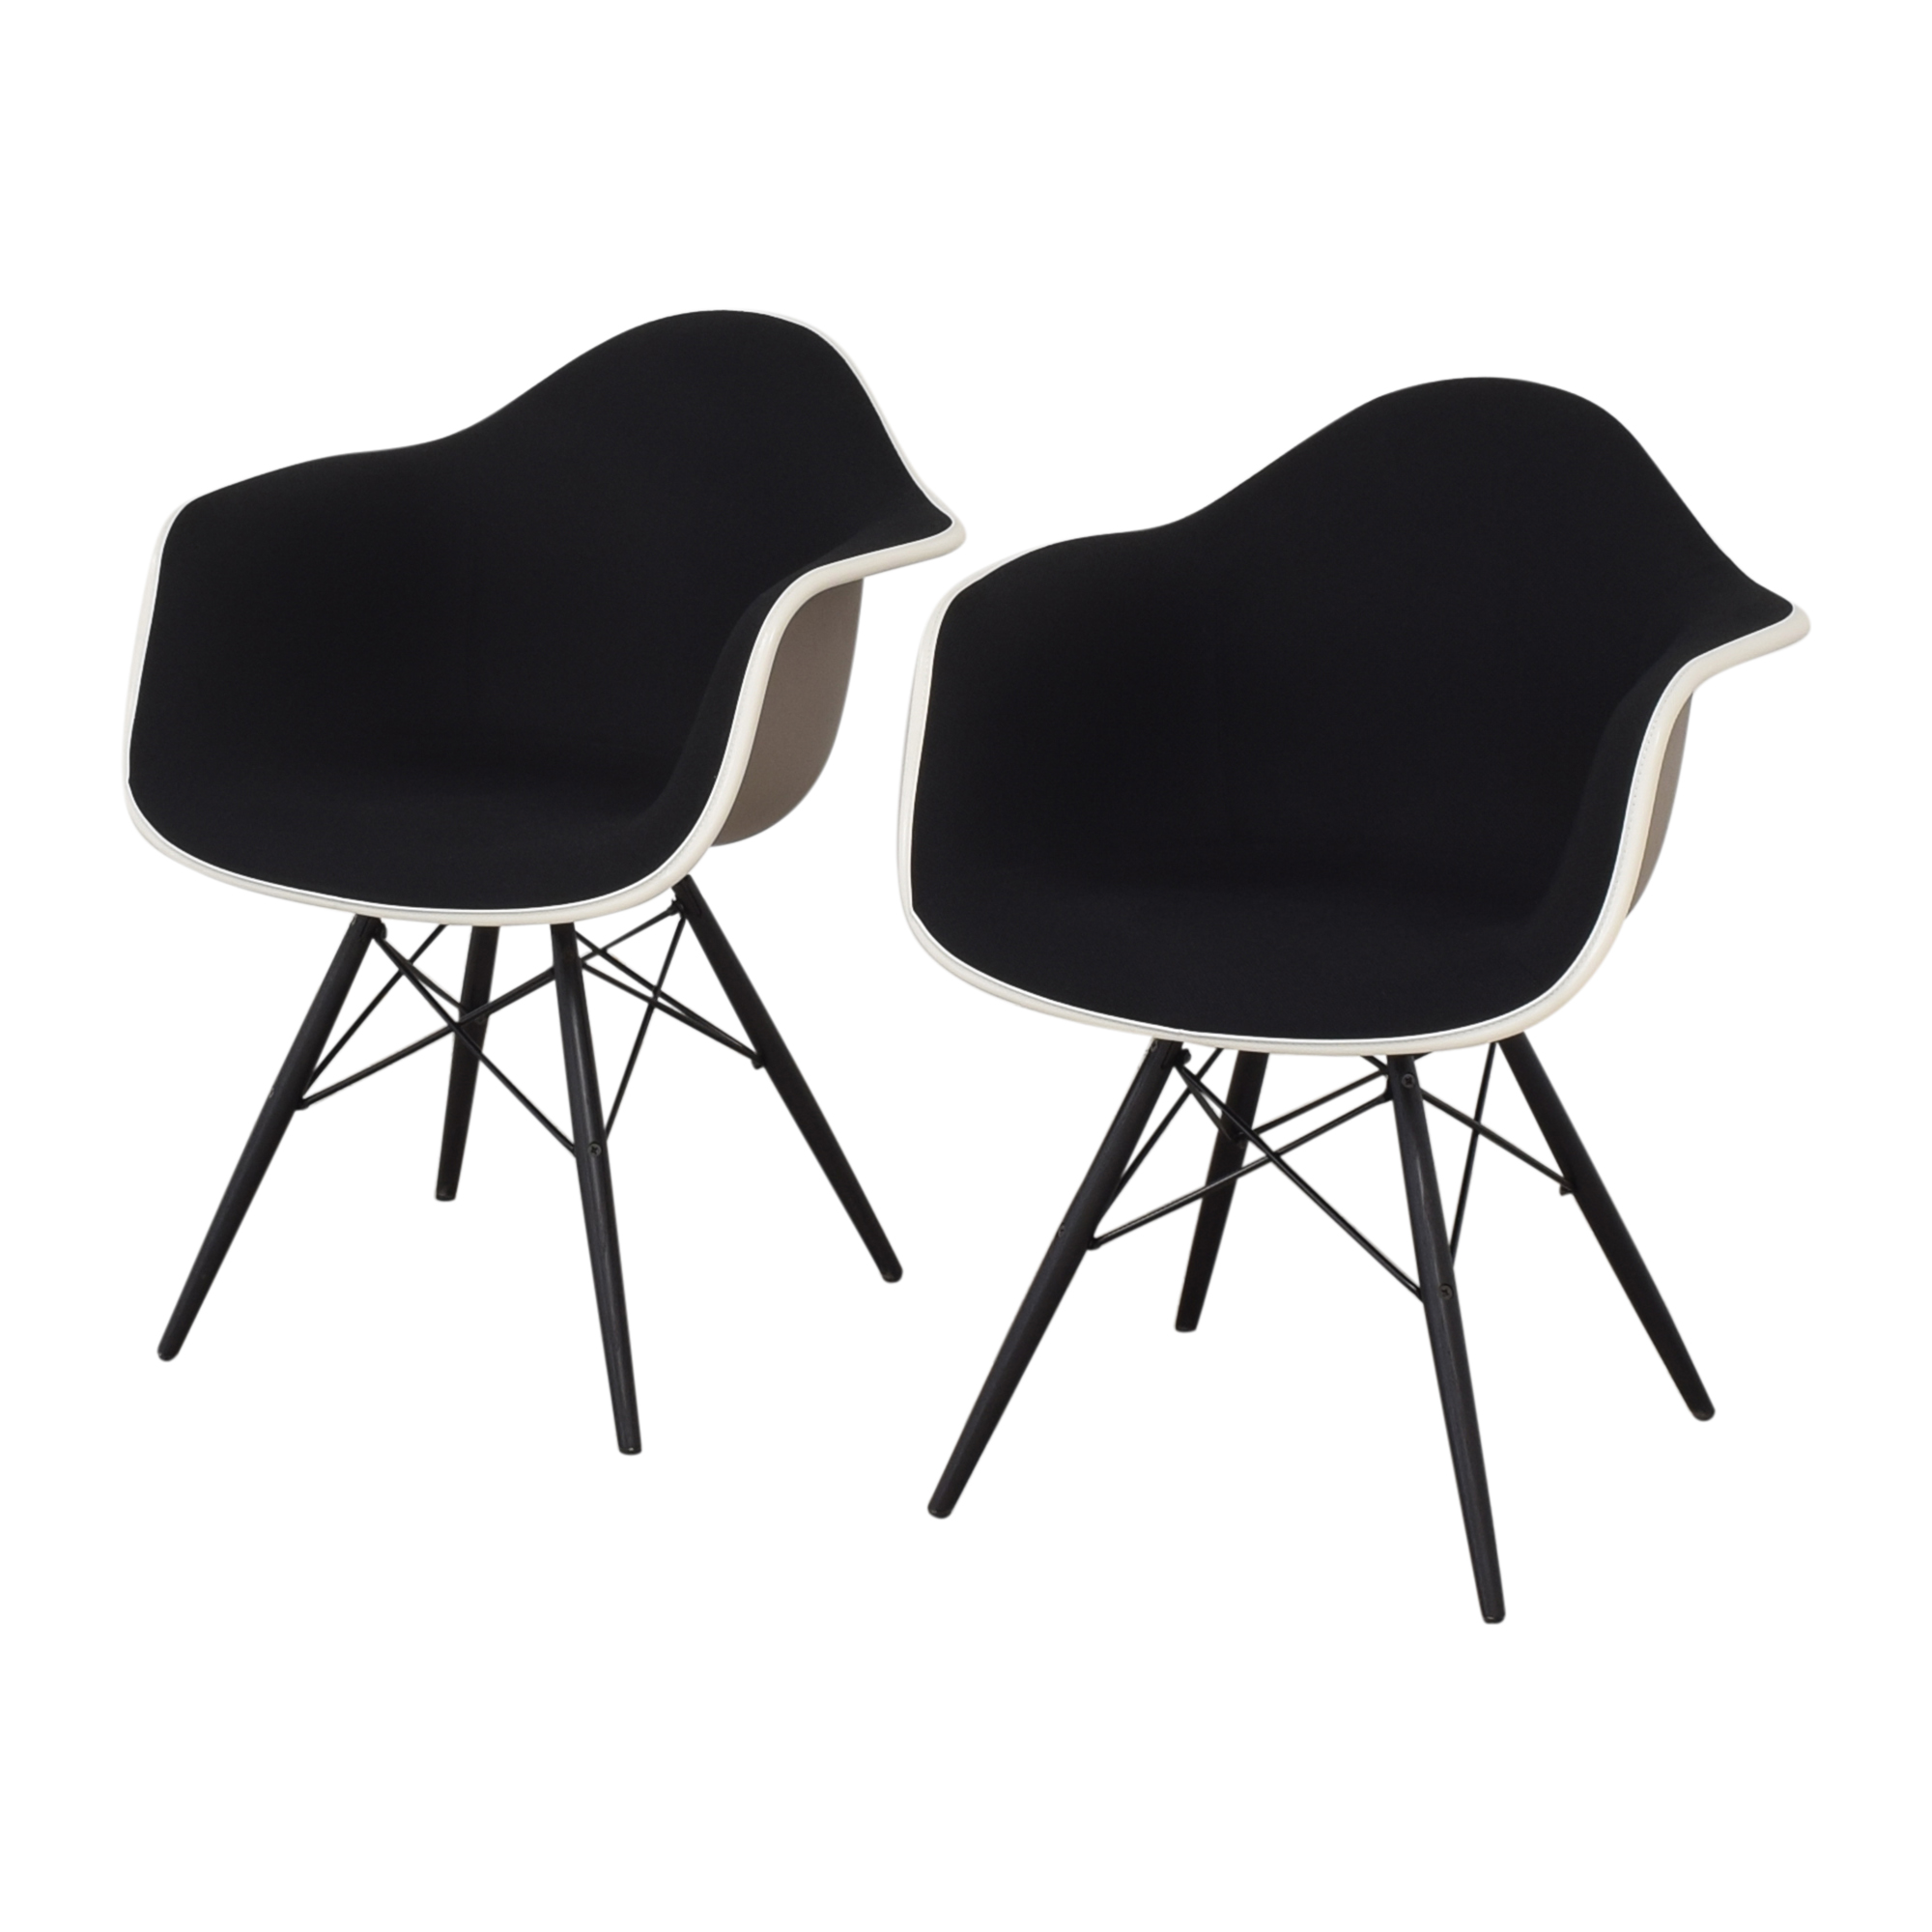 Herman Miller Herman Miller Eames Molded Arm Chairs Chairs